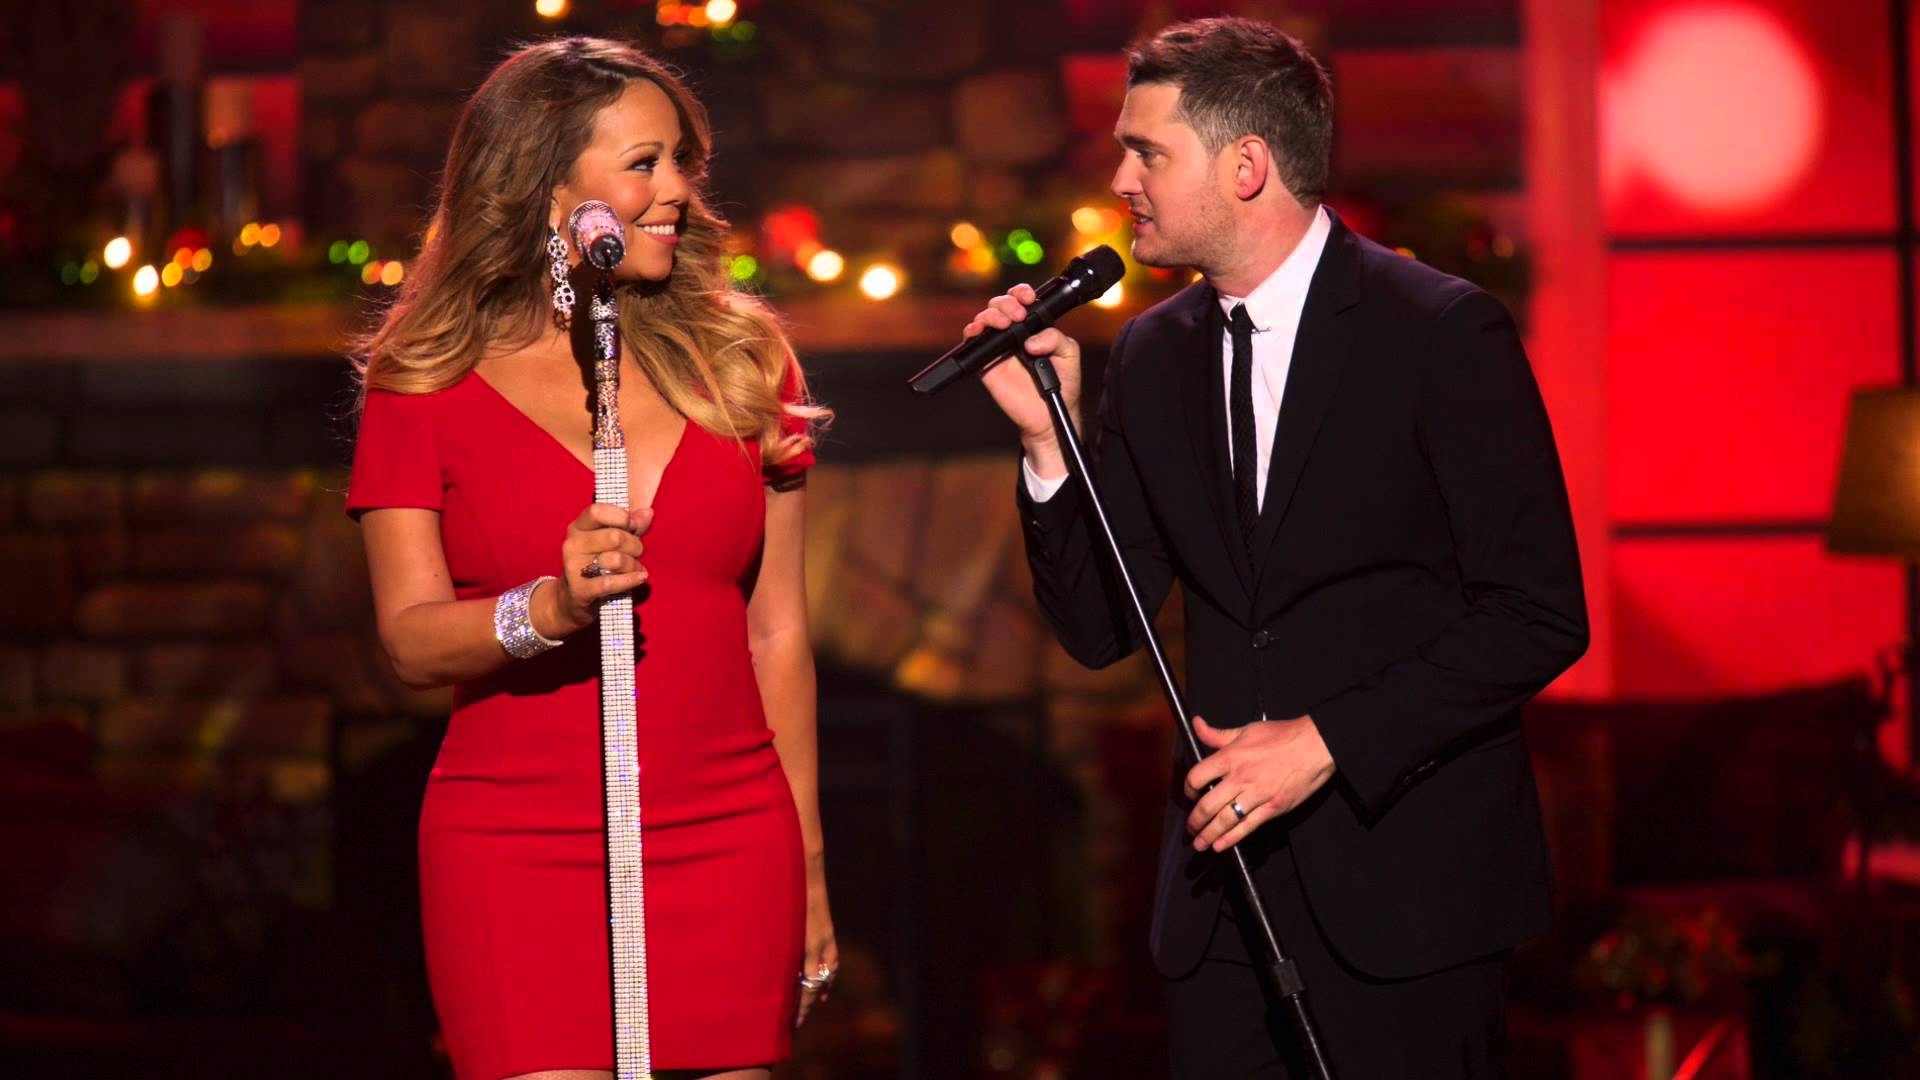 Maeiah Carey & Michael Buble